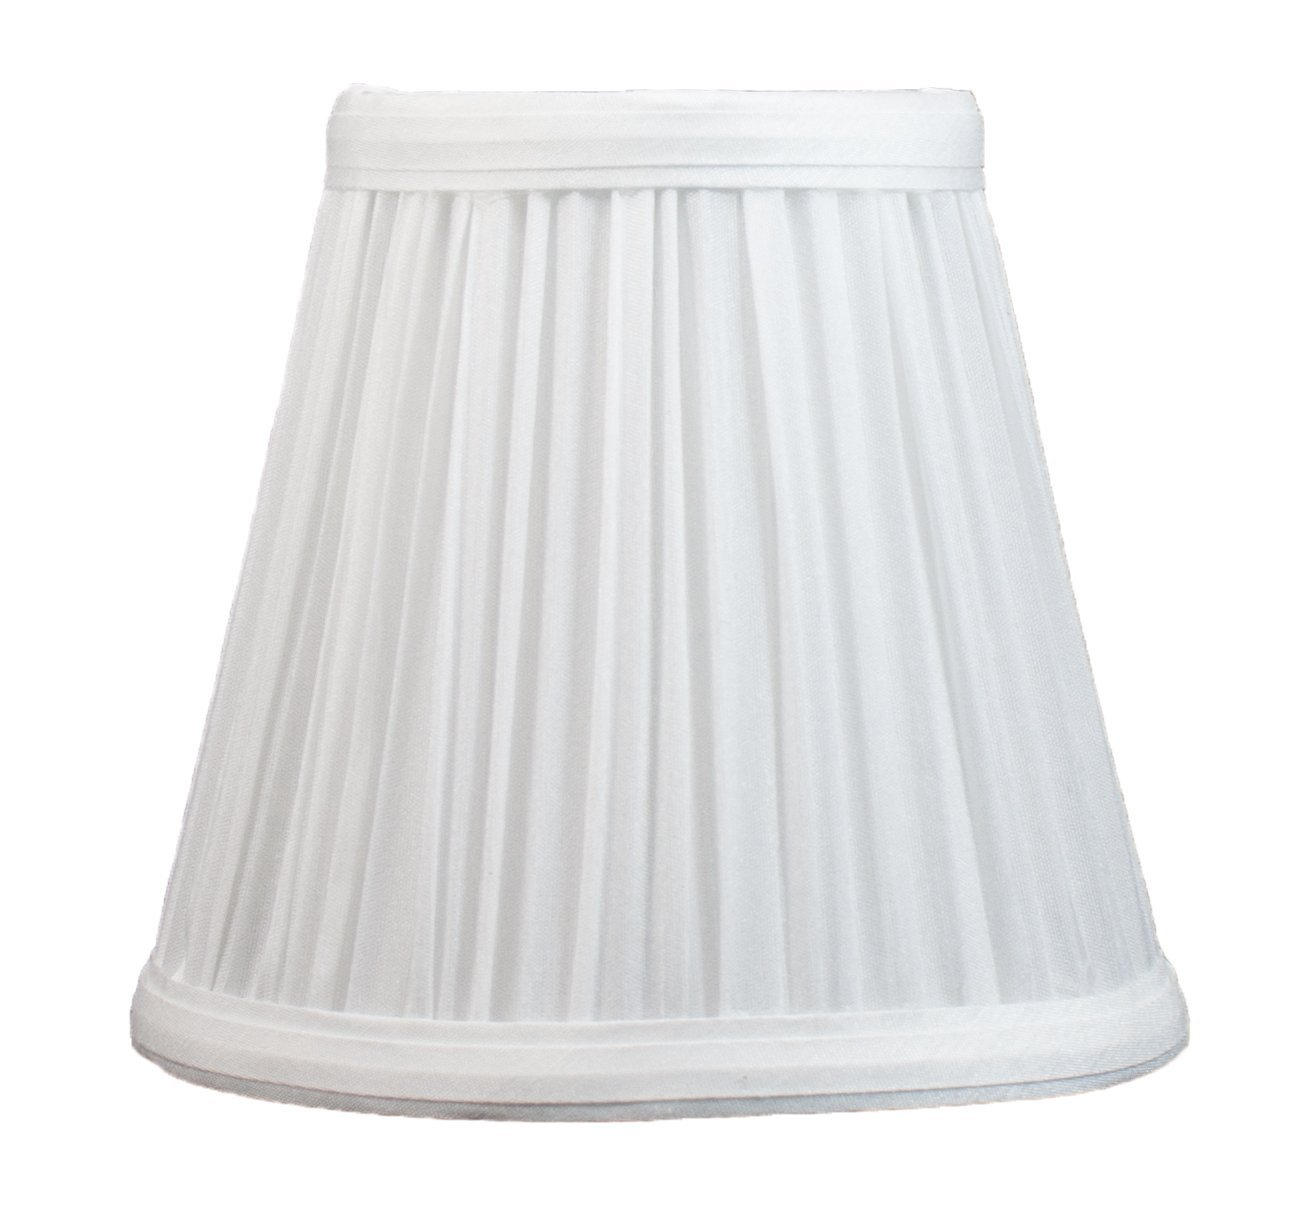 Urbanest Mushroom Pleated Chandelier Lamp Shade 3 Inch By